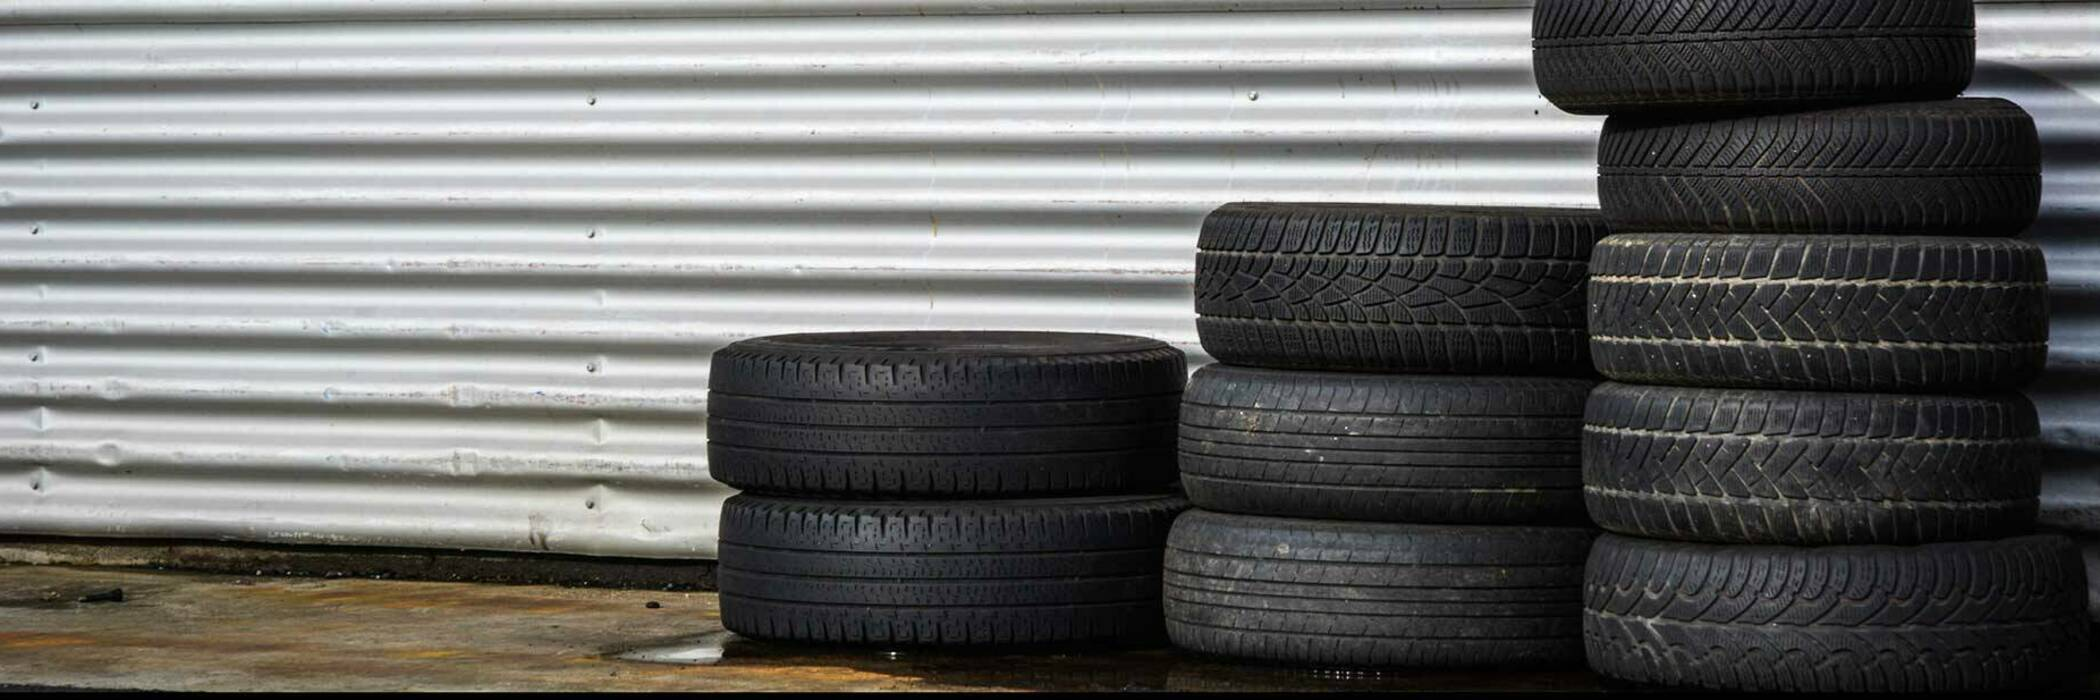 Photograph of a pile of tyres outside a garage.